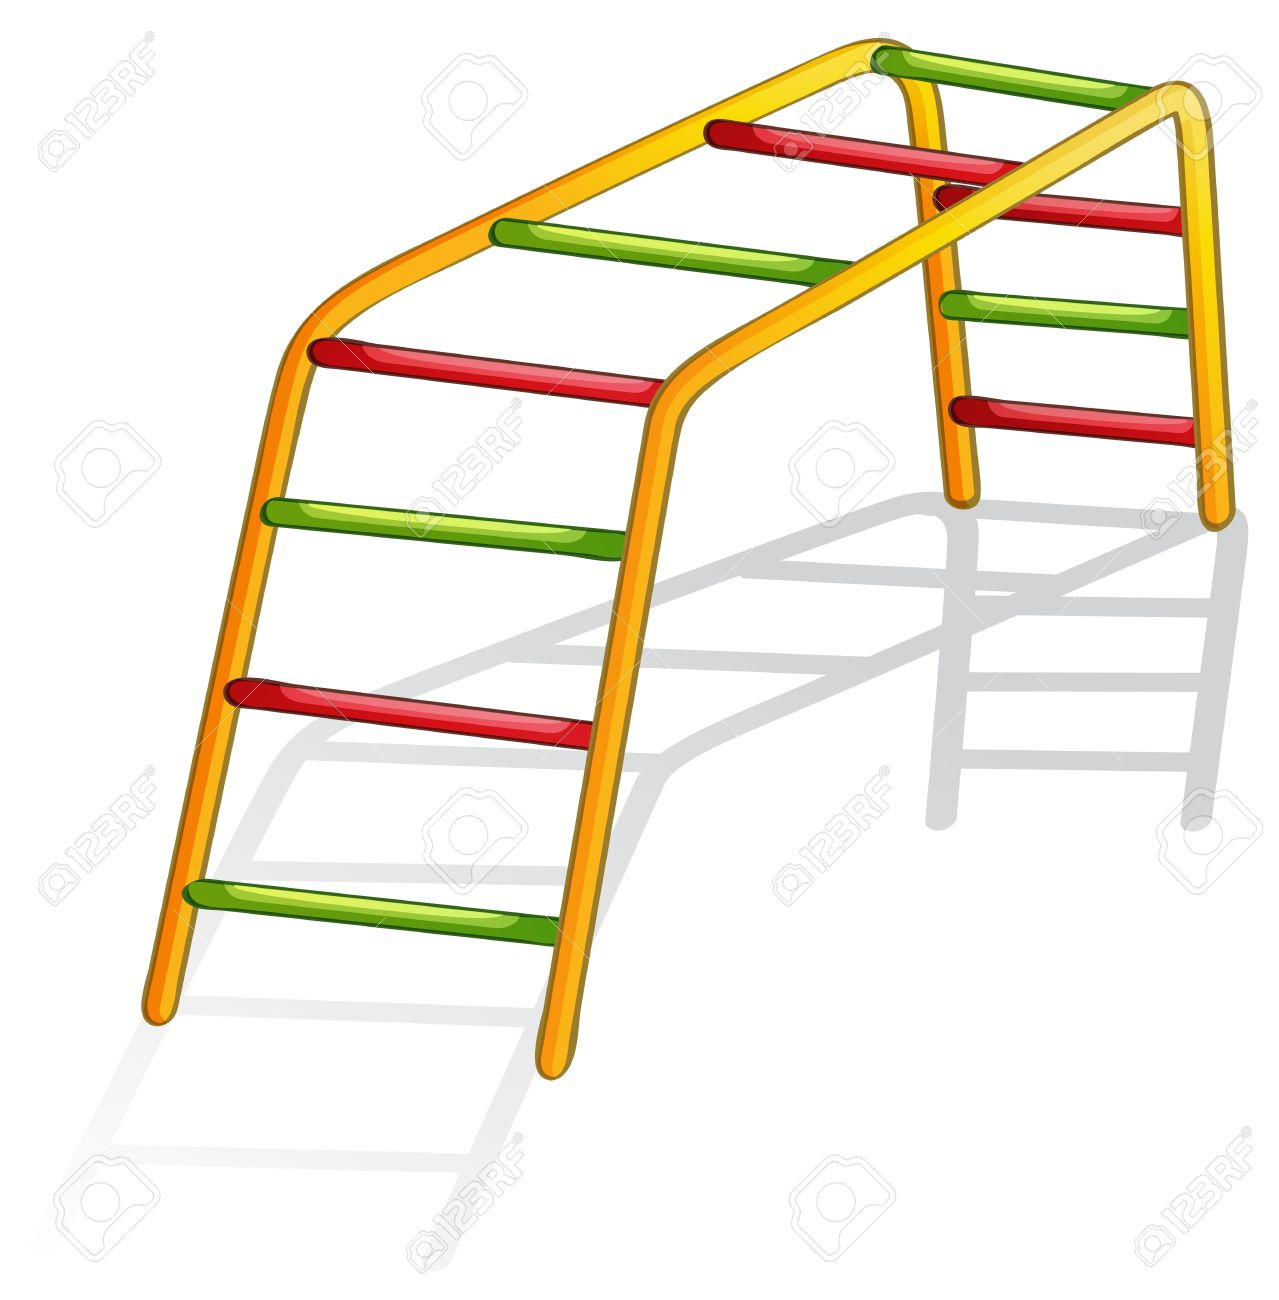 Isolated illustration of play equipment - monkey bars Stock Vector - 13268554